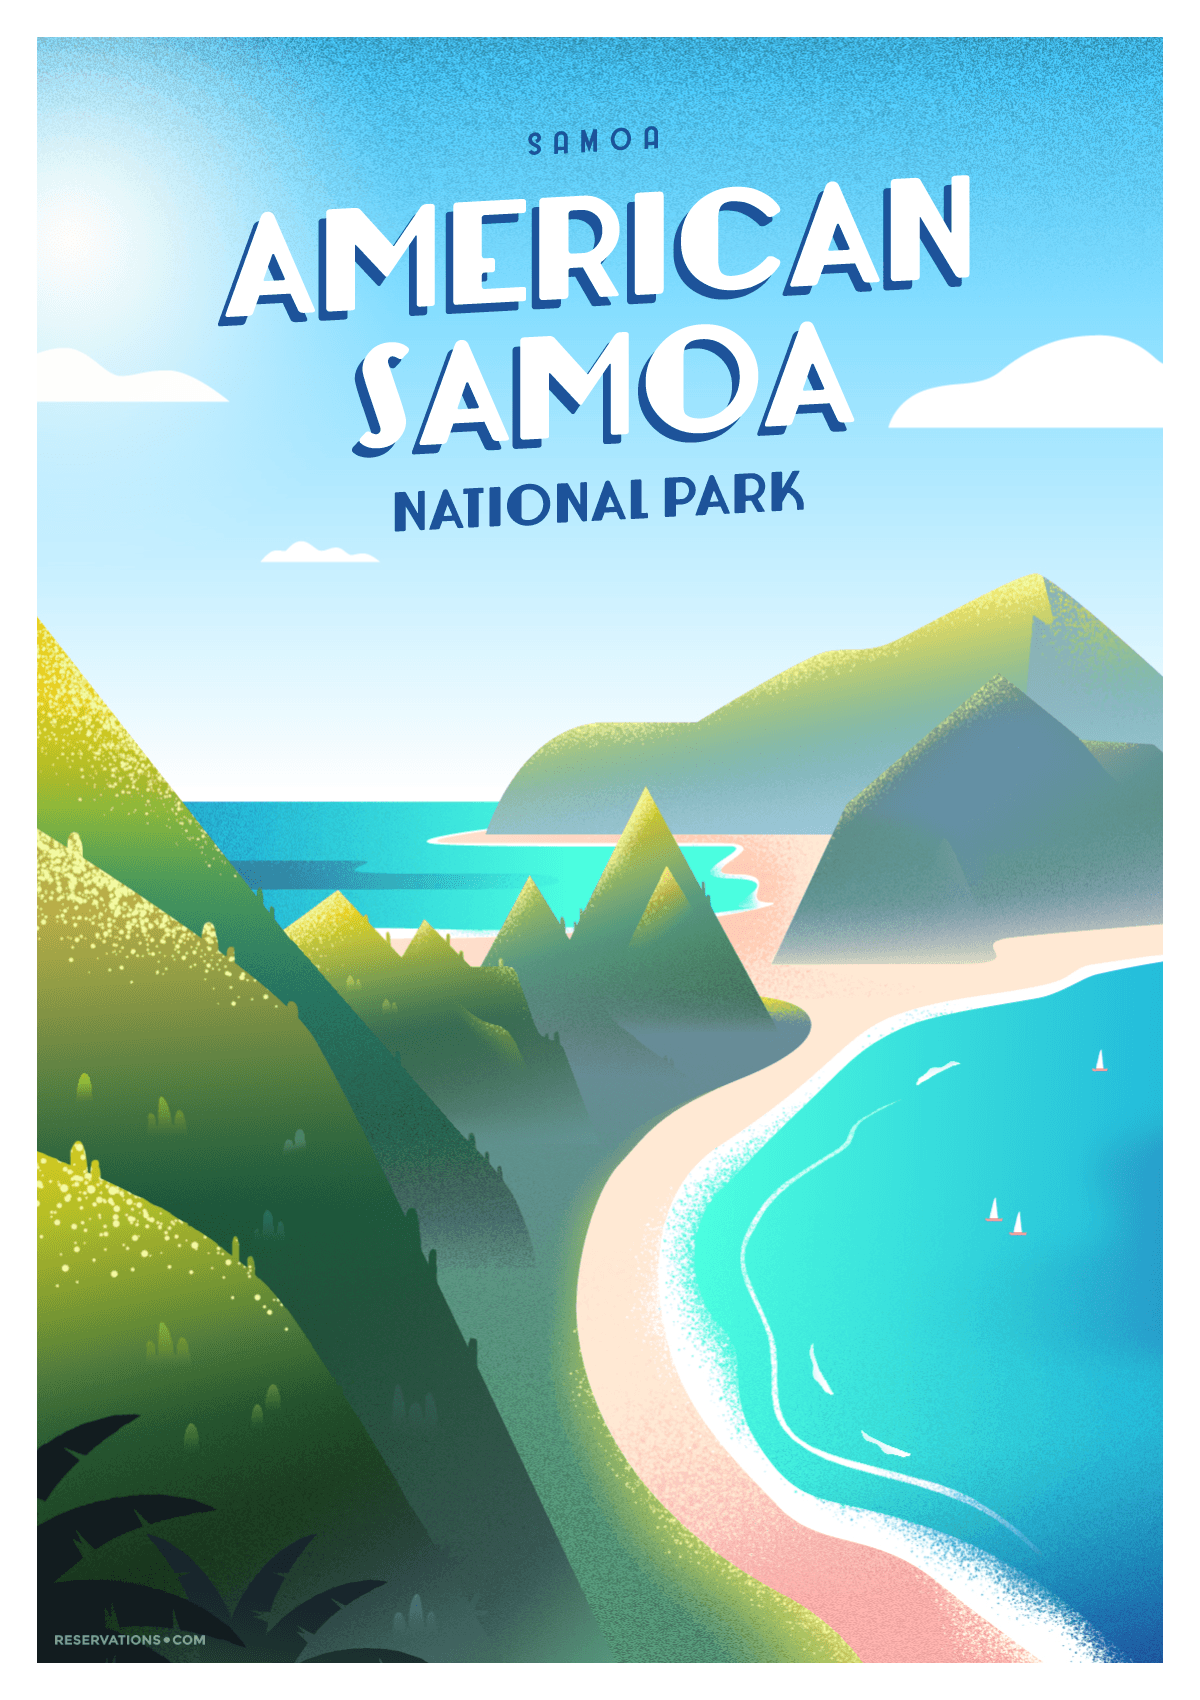 National Park of American Samoa vintage travel poster